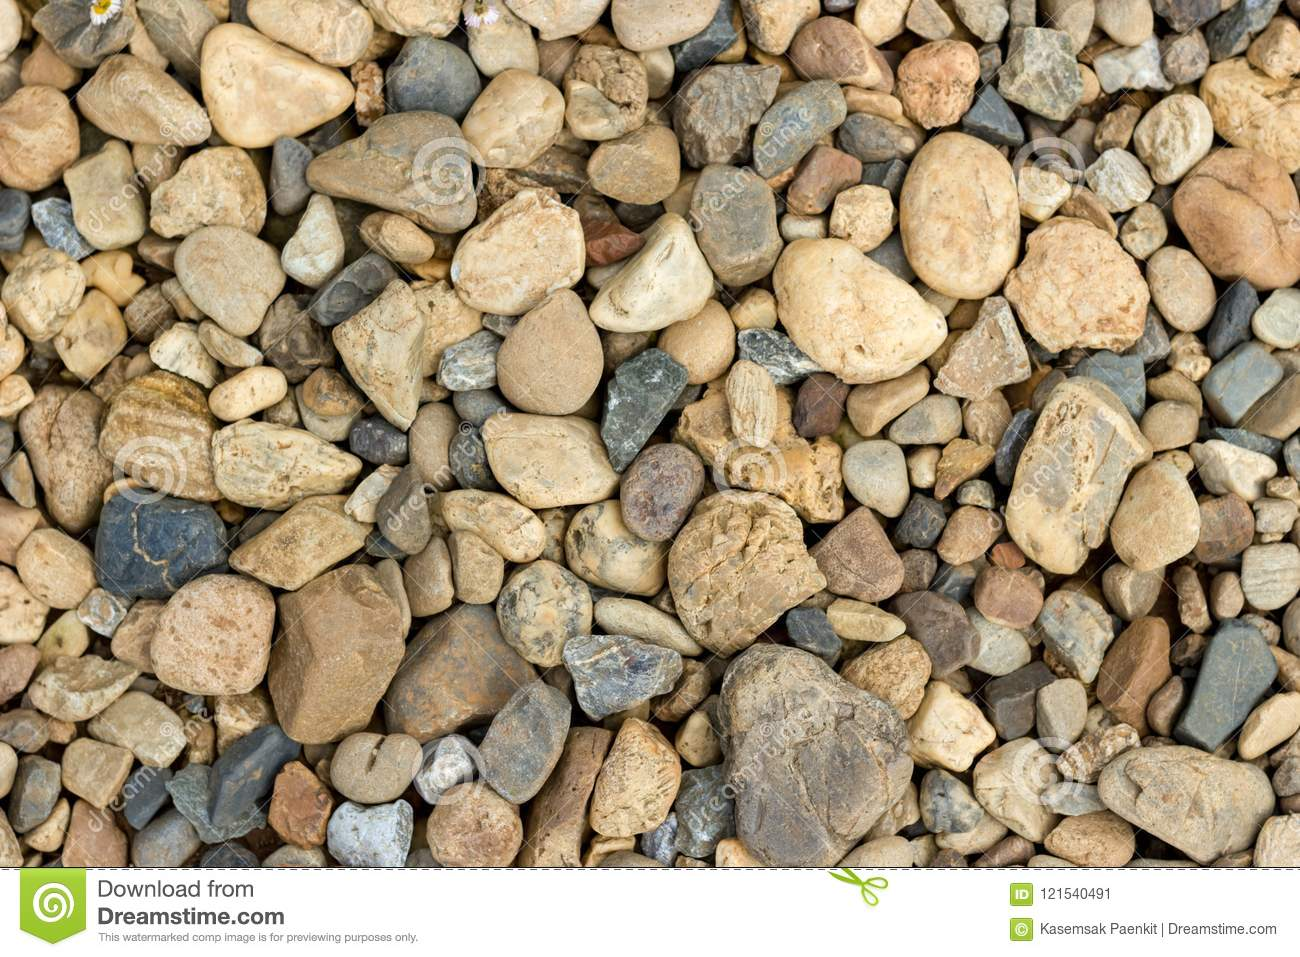 Gravel is a type of sedimentary rock that is tidied upstream due to friction the skin is smooth there are two types of gravel and river gravel